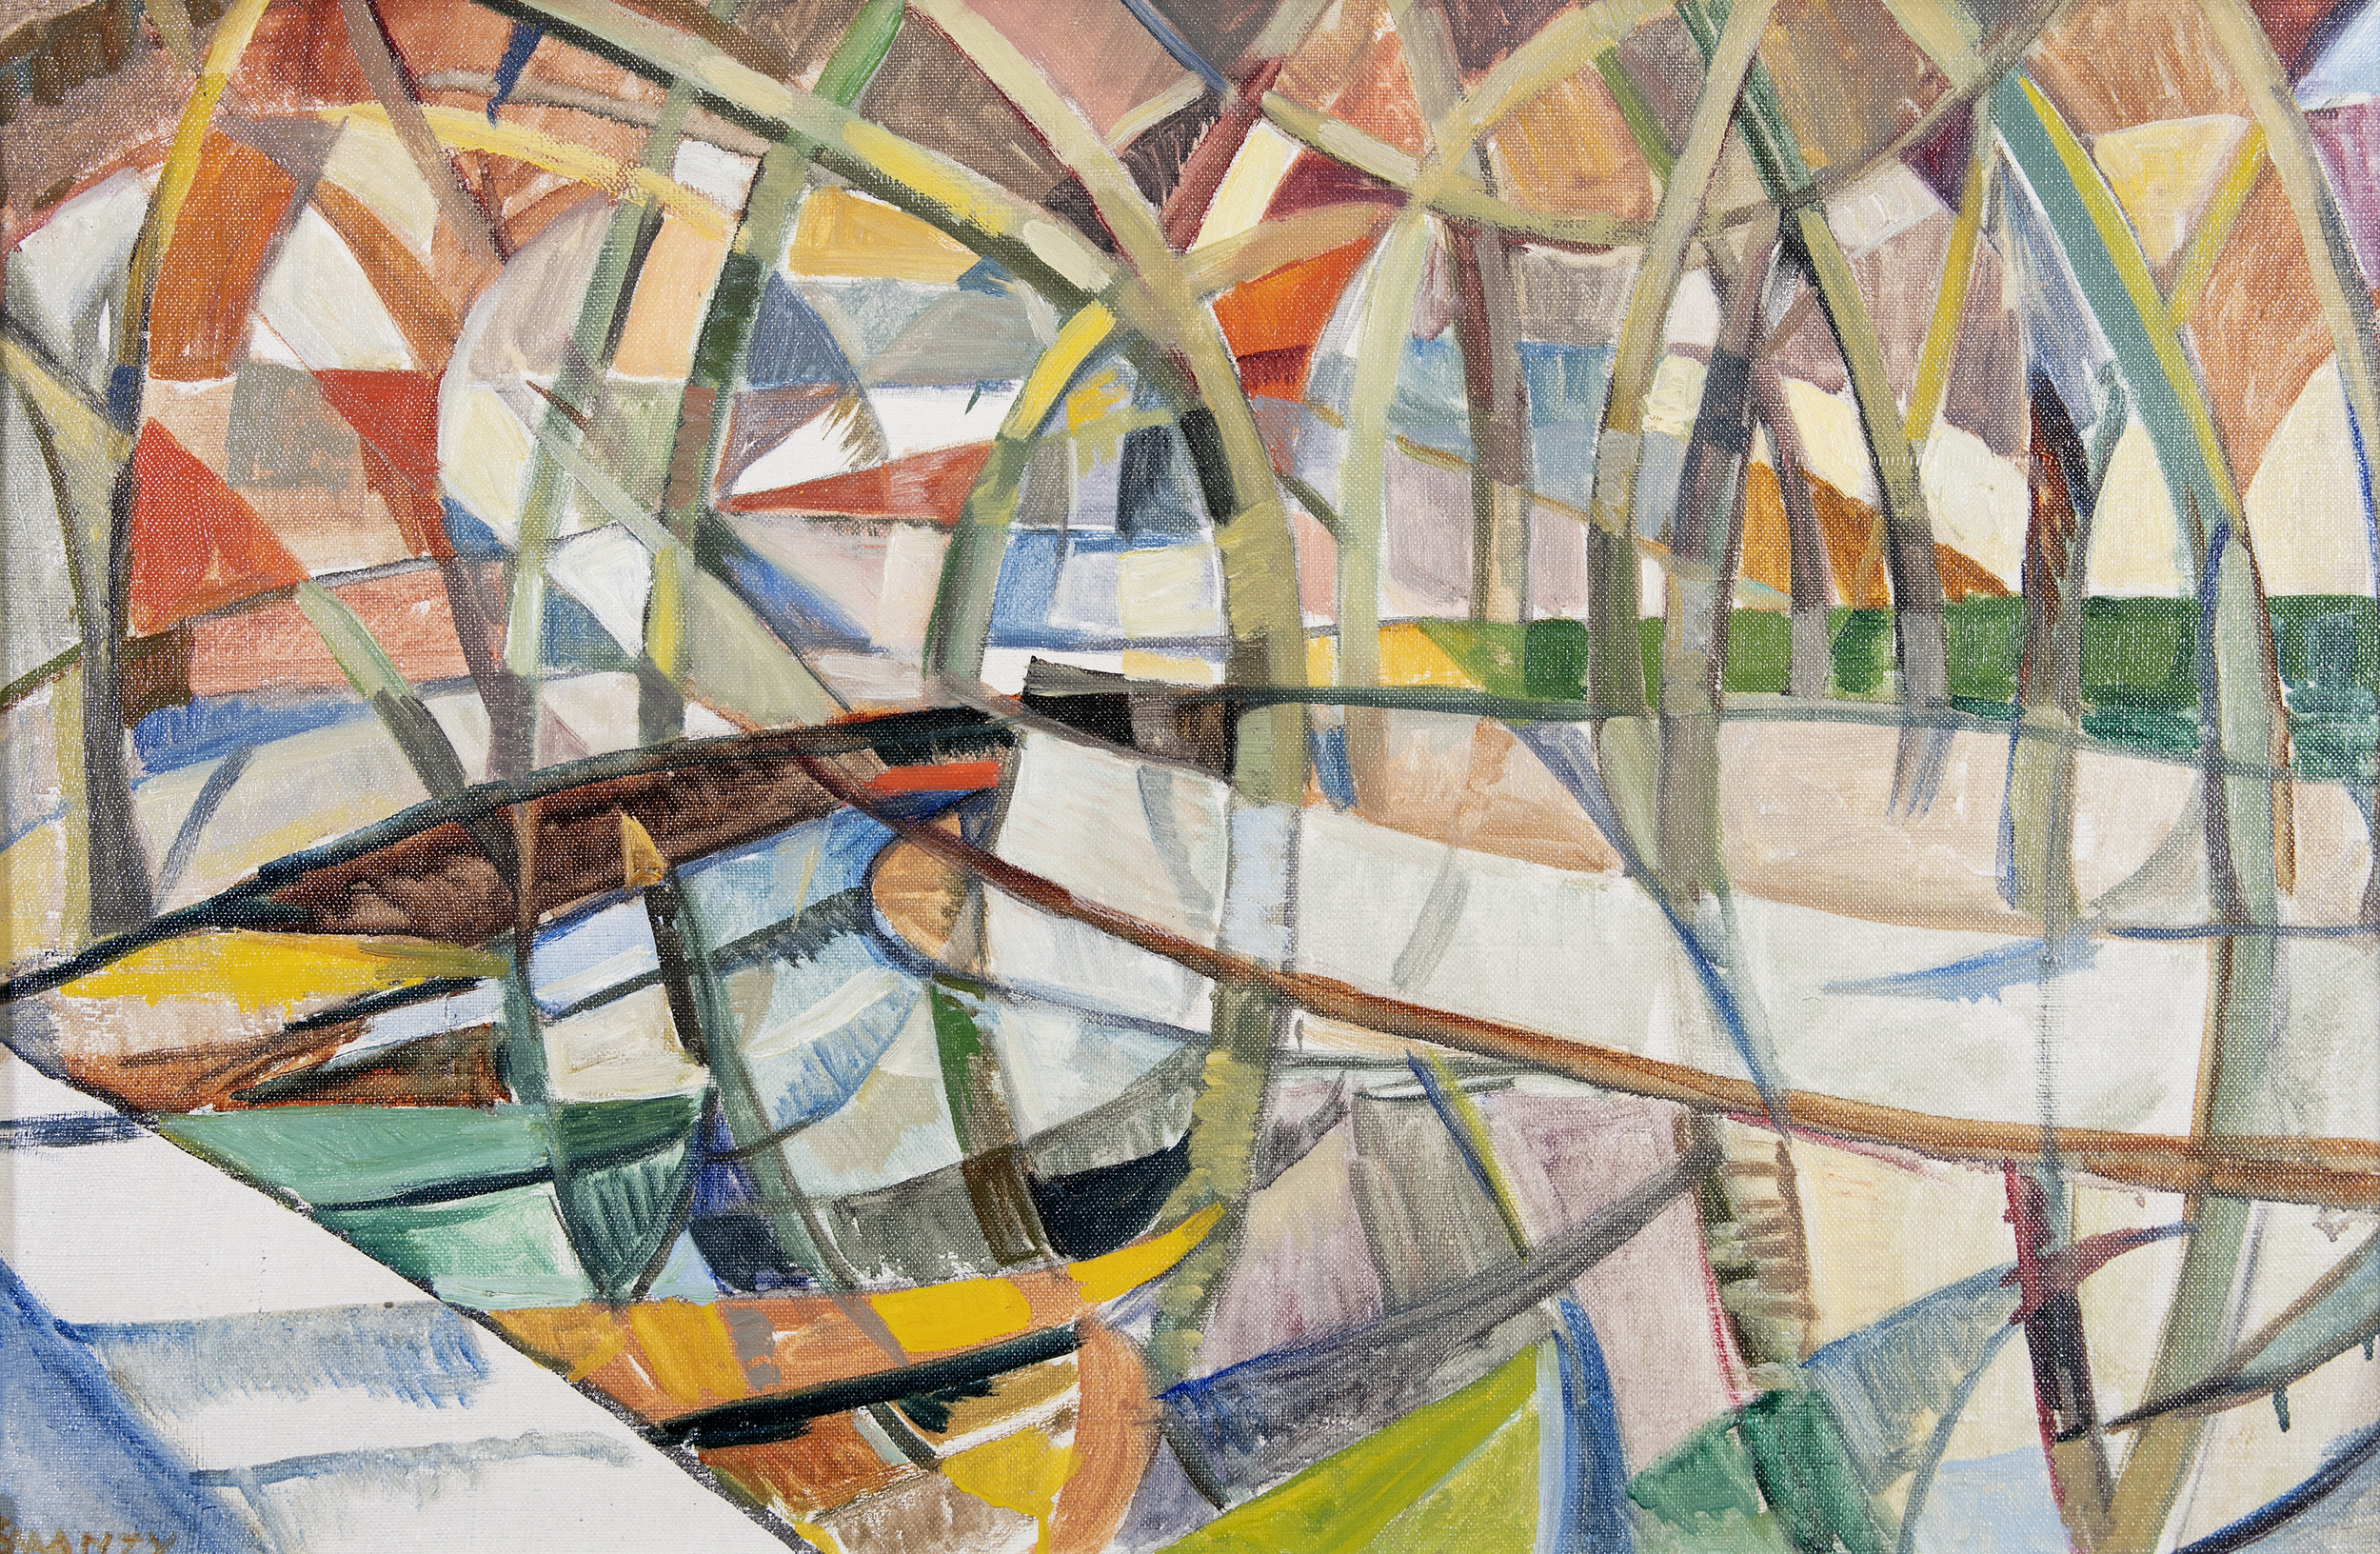 Lot 27 - Mary Swanzy HRHA (1882-1978)Cubist LandscapeOil on canvas, 39.5 x 60cm (15½ x 23¾)SignedThis